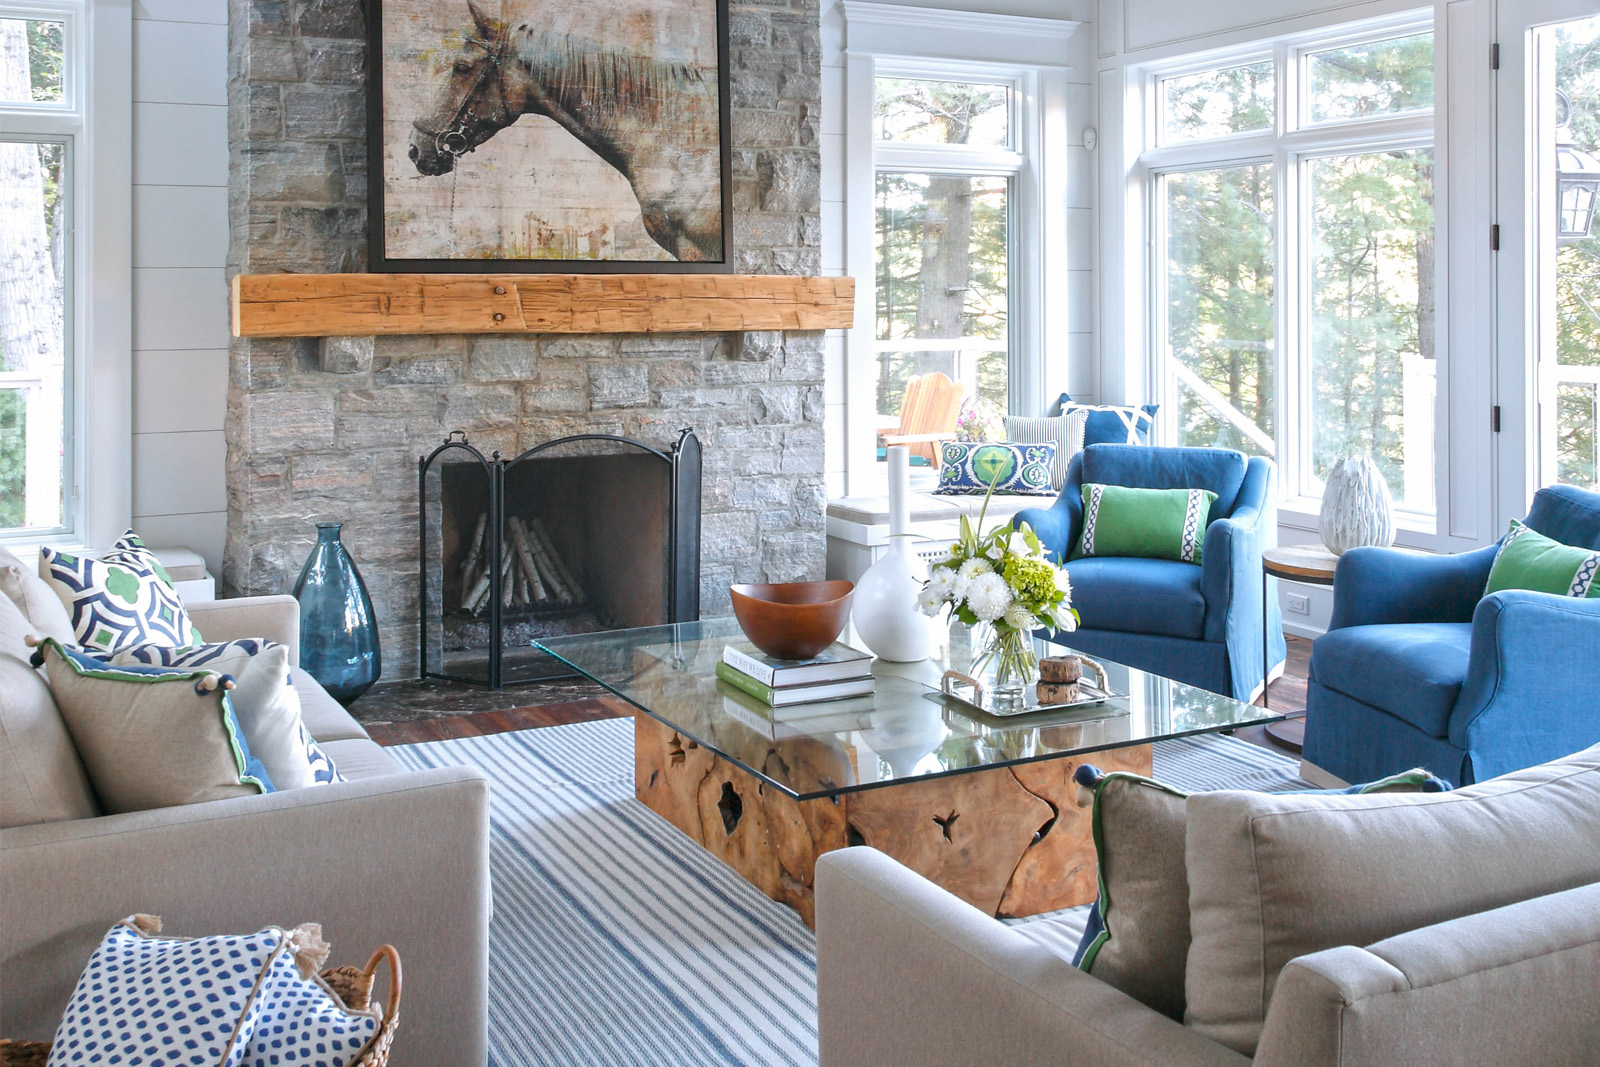 Learn How To Style Your Property With The Hamptons Style To Attract